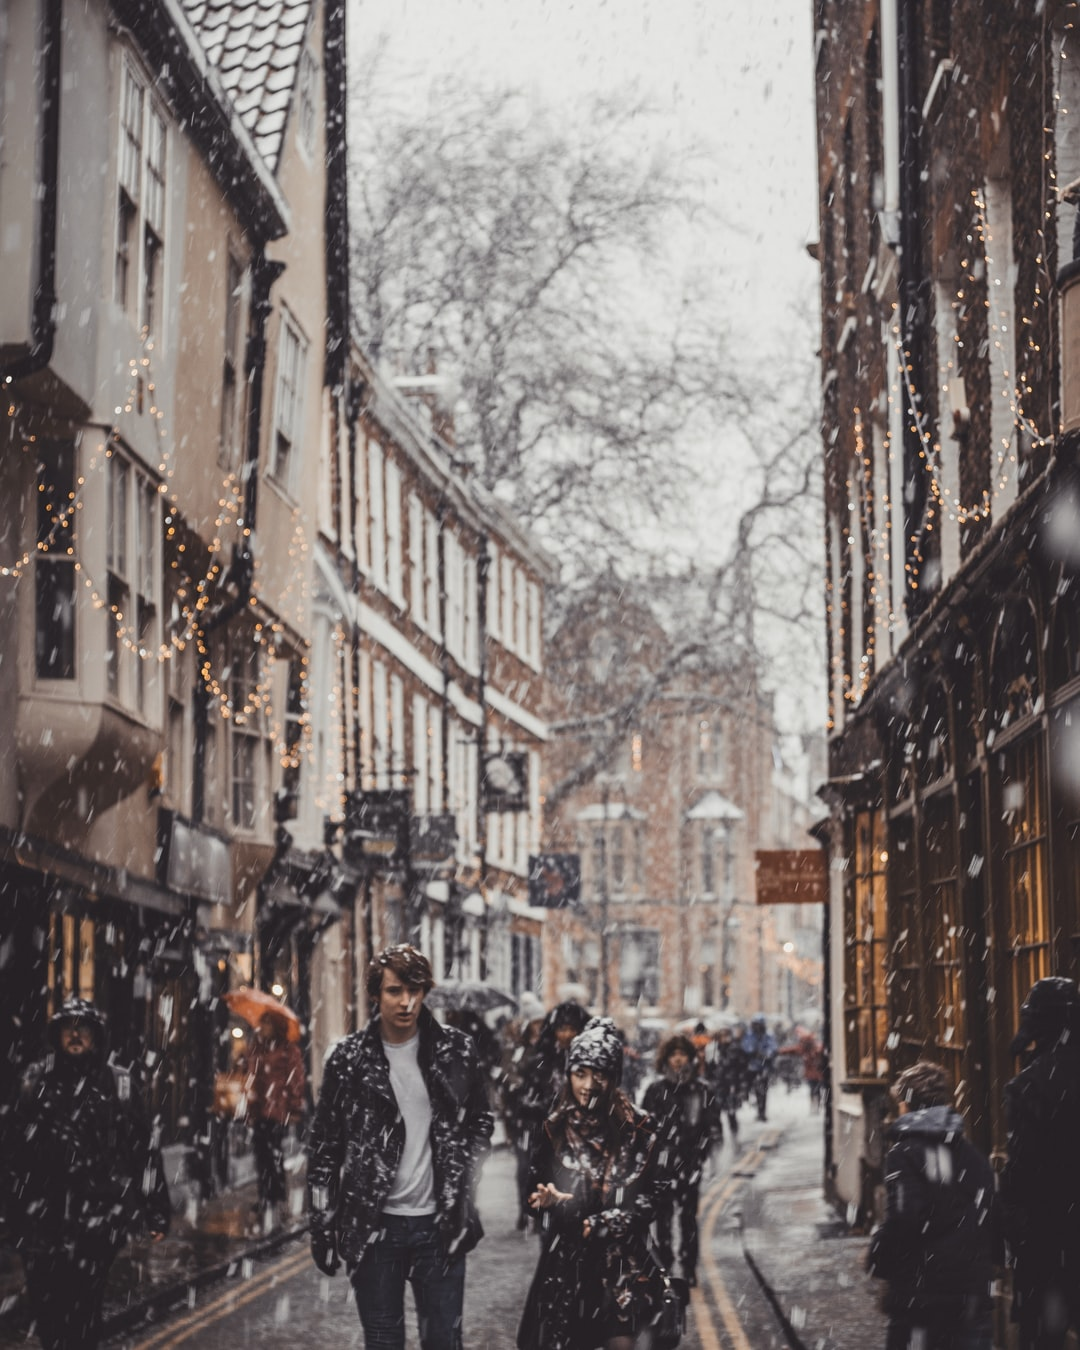 Its quite rare that we see snow in England before Christmas. It really brings our old towns to life and gives such a great atmosphere.